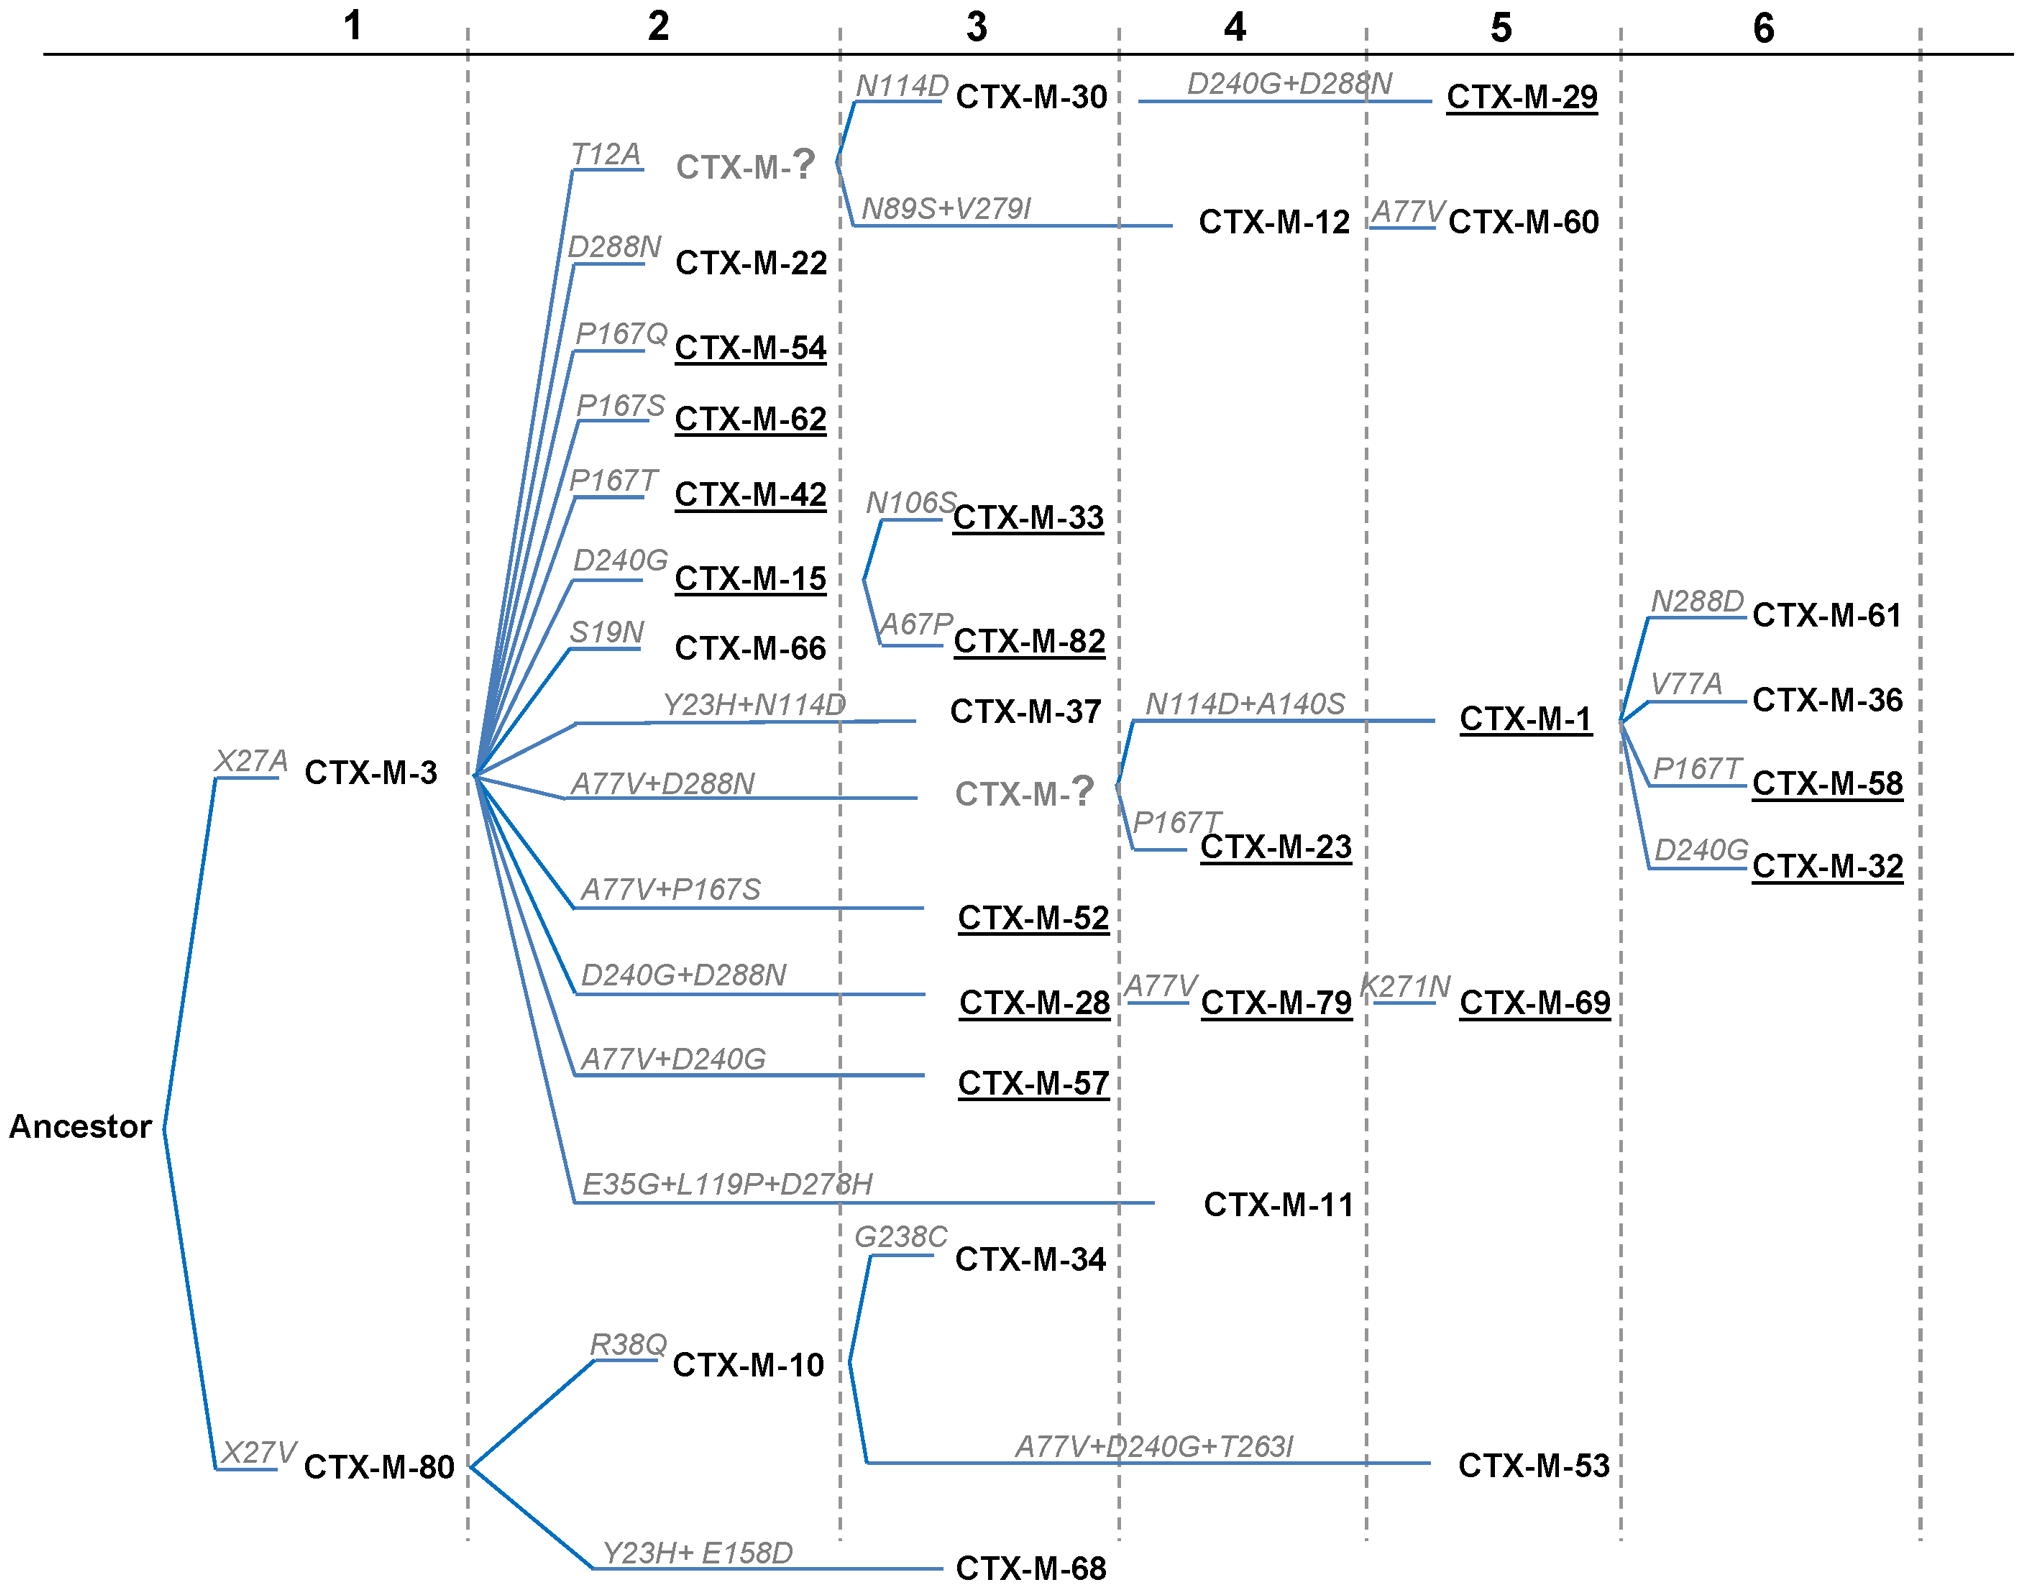 Phylogenetic reconstruction of CTX-M-1 cluster enzymes.